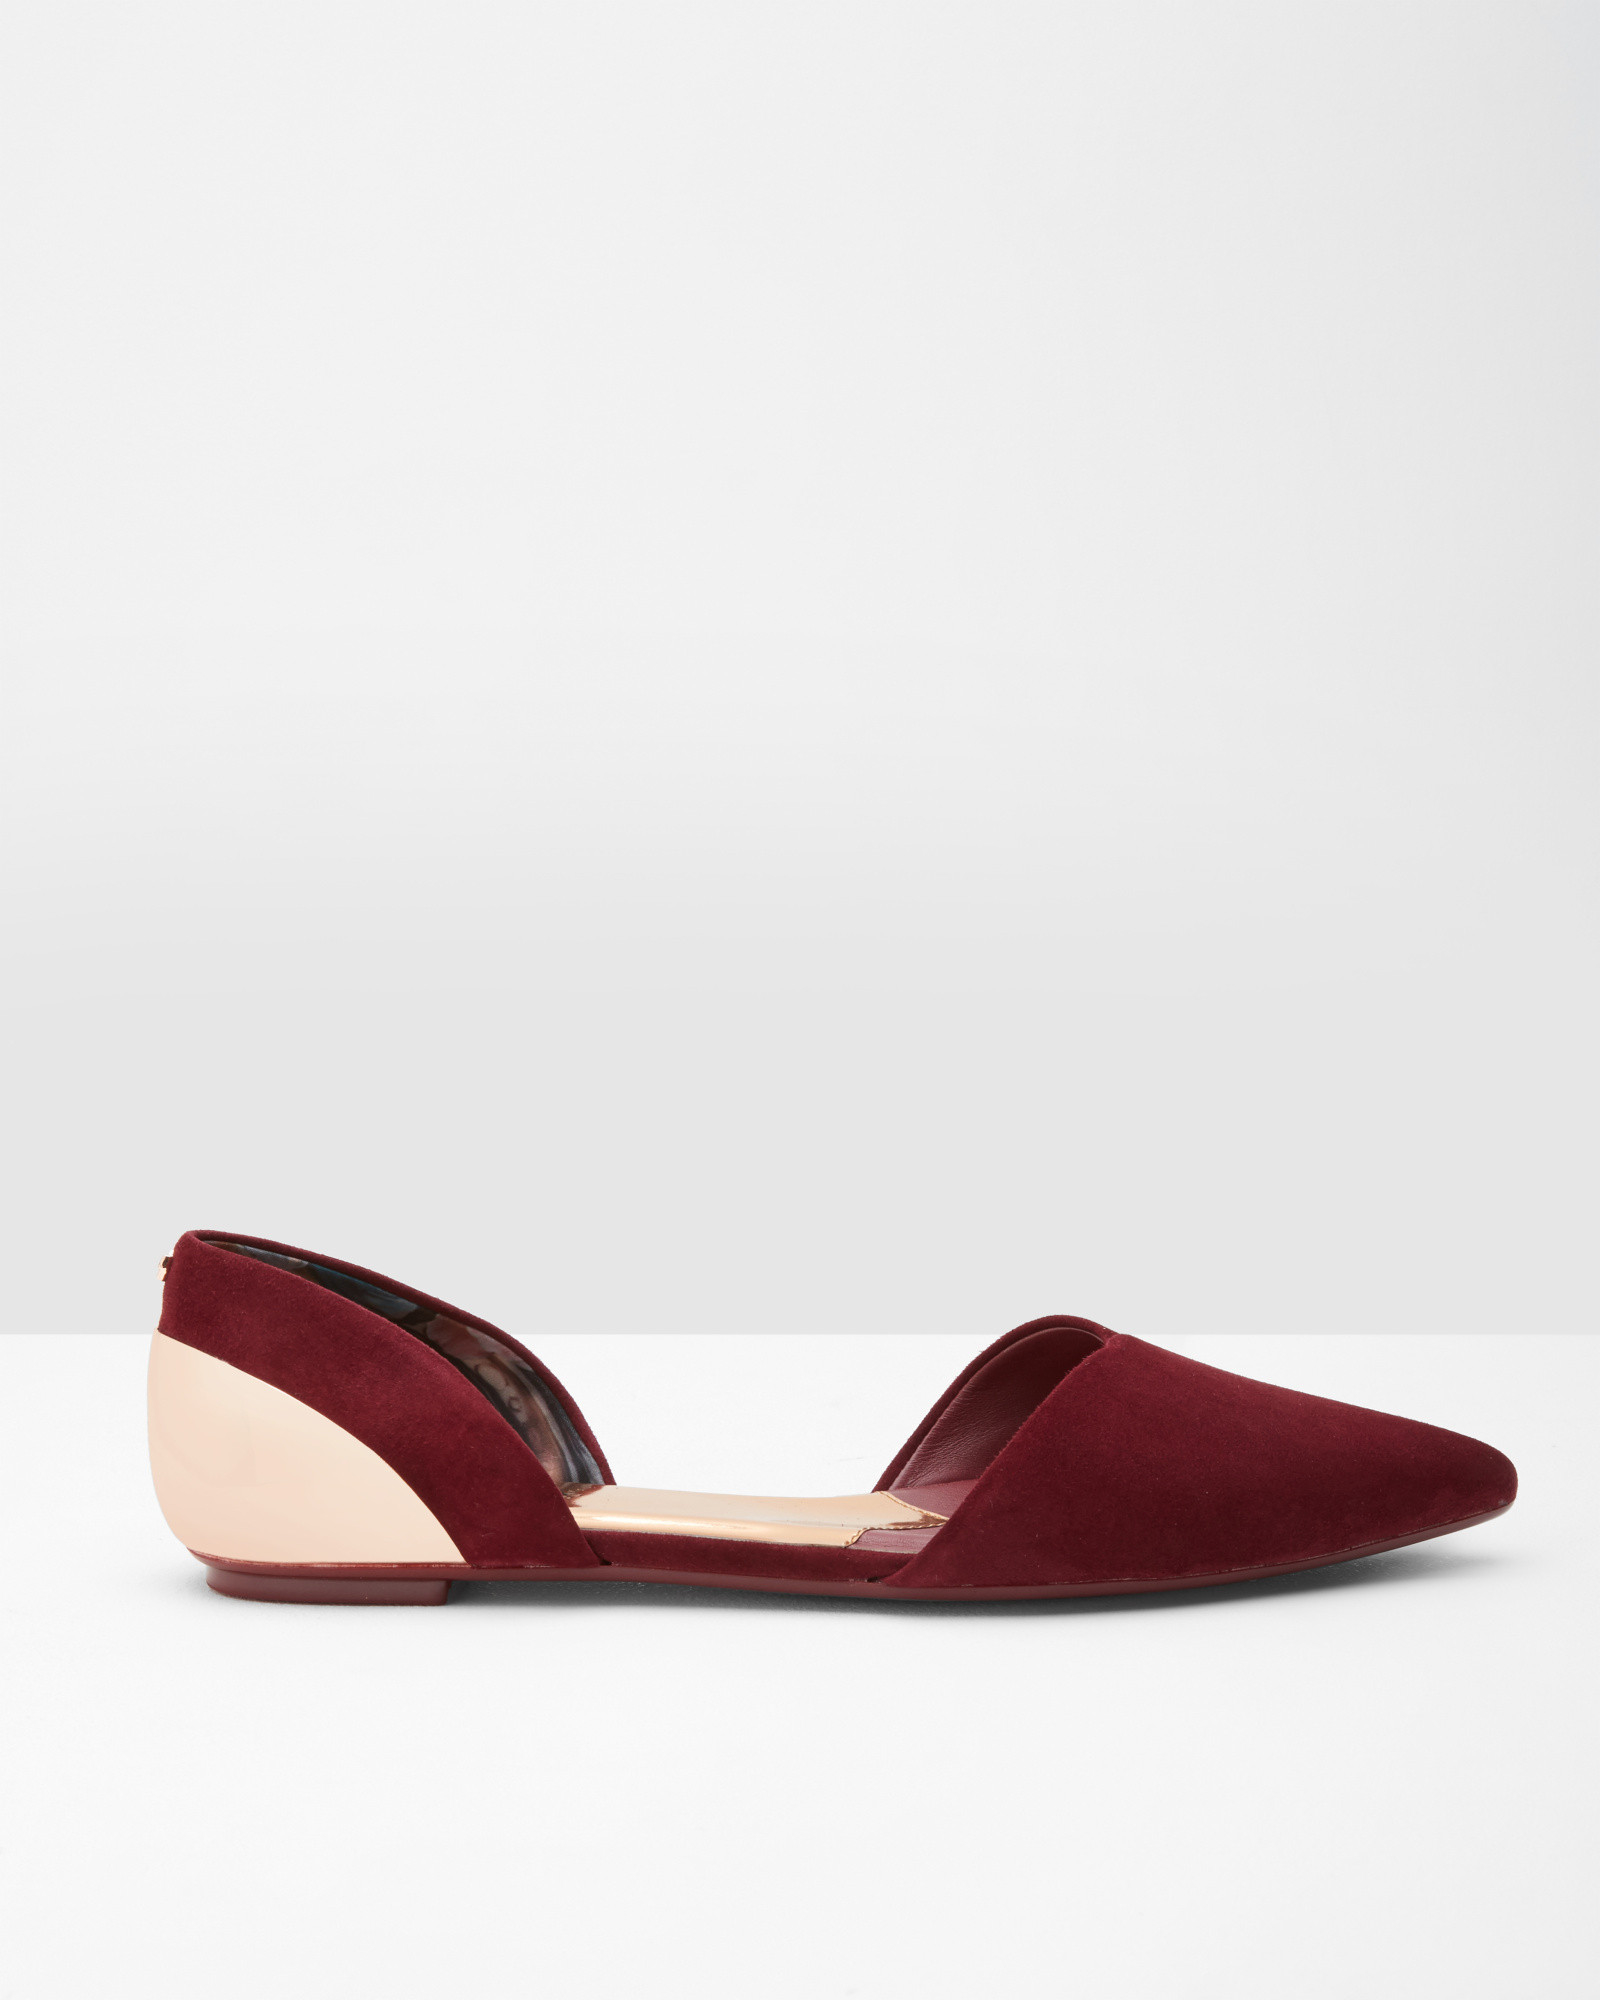 b15c8369151f9 Ted Baker Pointed Leather Flat D orsay Shoes in Red - Lyst